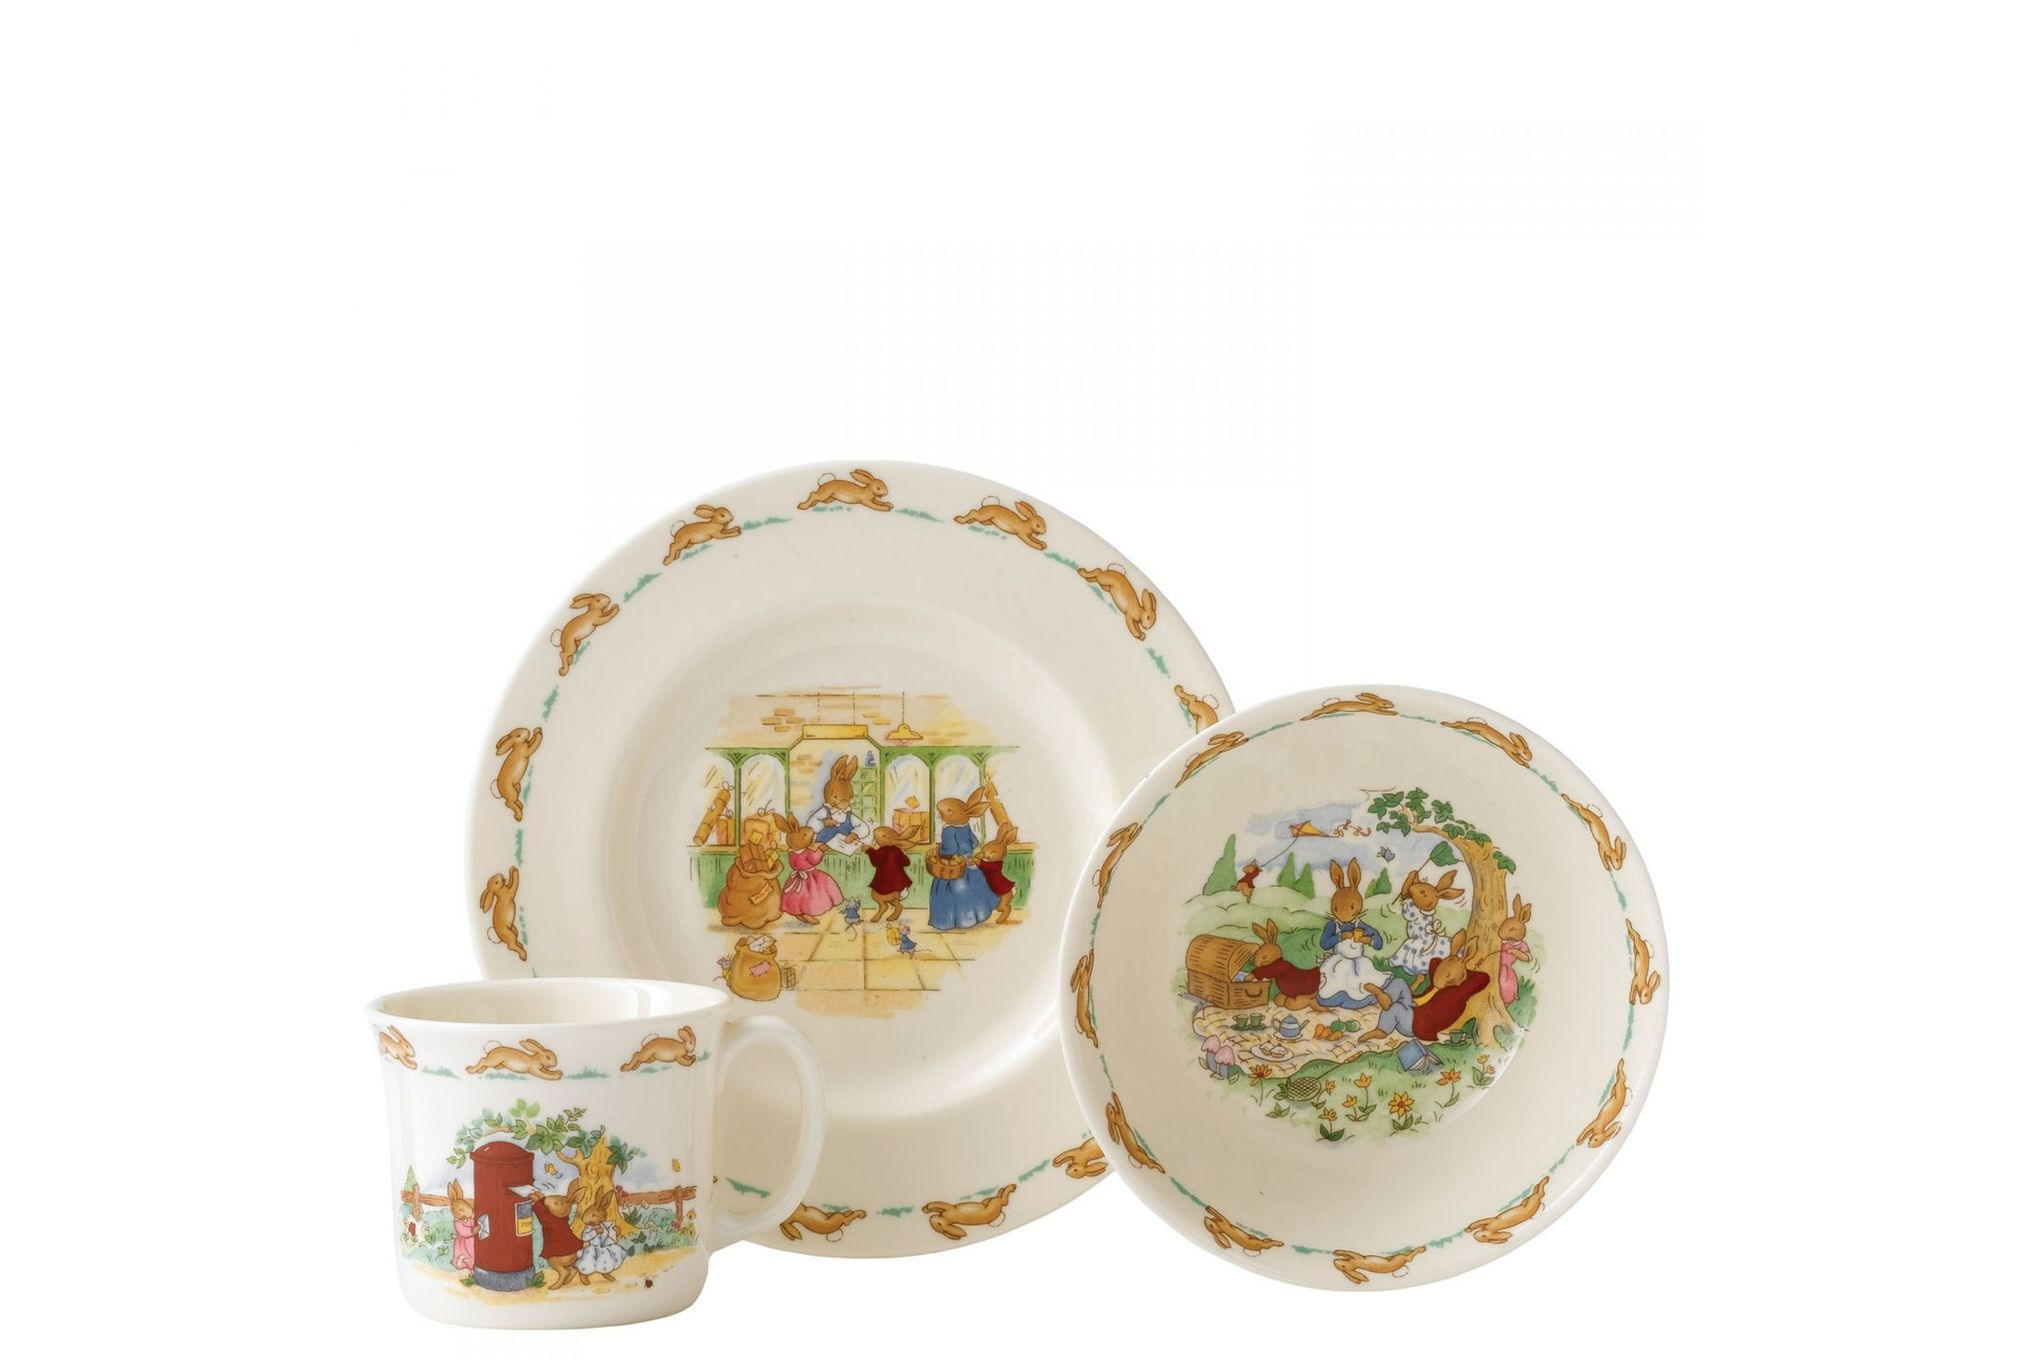 Royal Doulton Bunnykins 3 Piece Set 20cm Plate, Cereal Bowl, 1 Handled Hug-a-Mug thumb 1